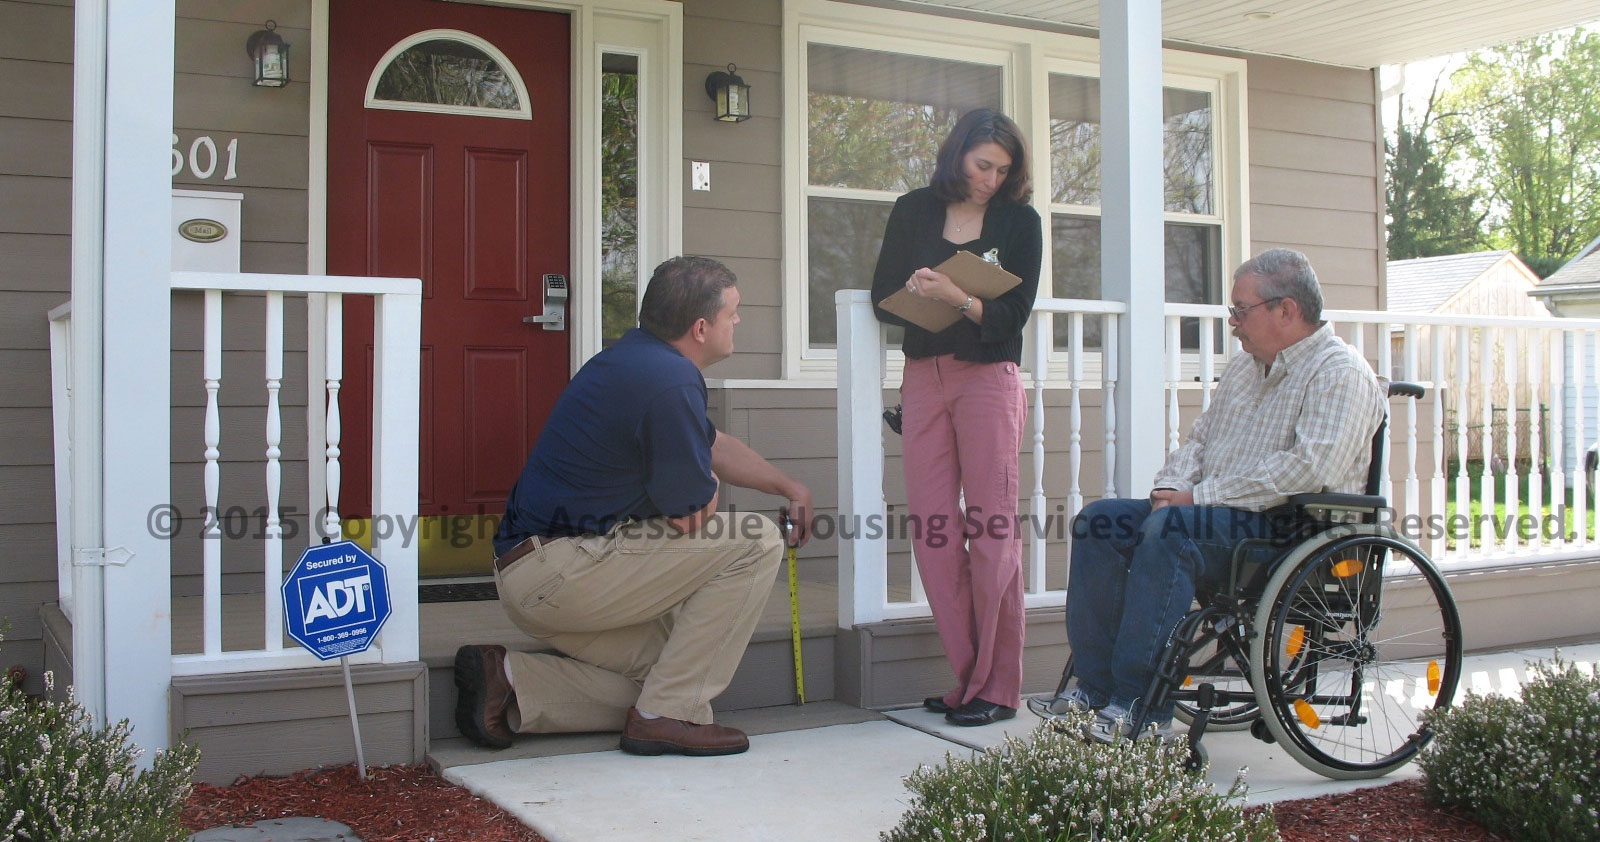 Measuring wheelchair accessible home entrance accessible Wheelchair accessible housing